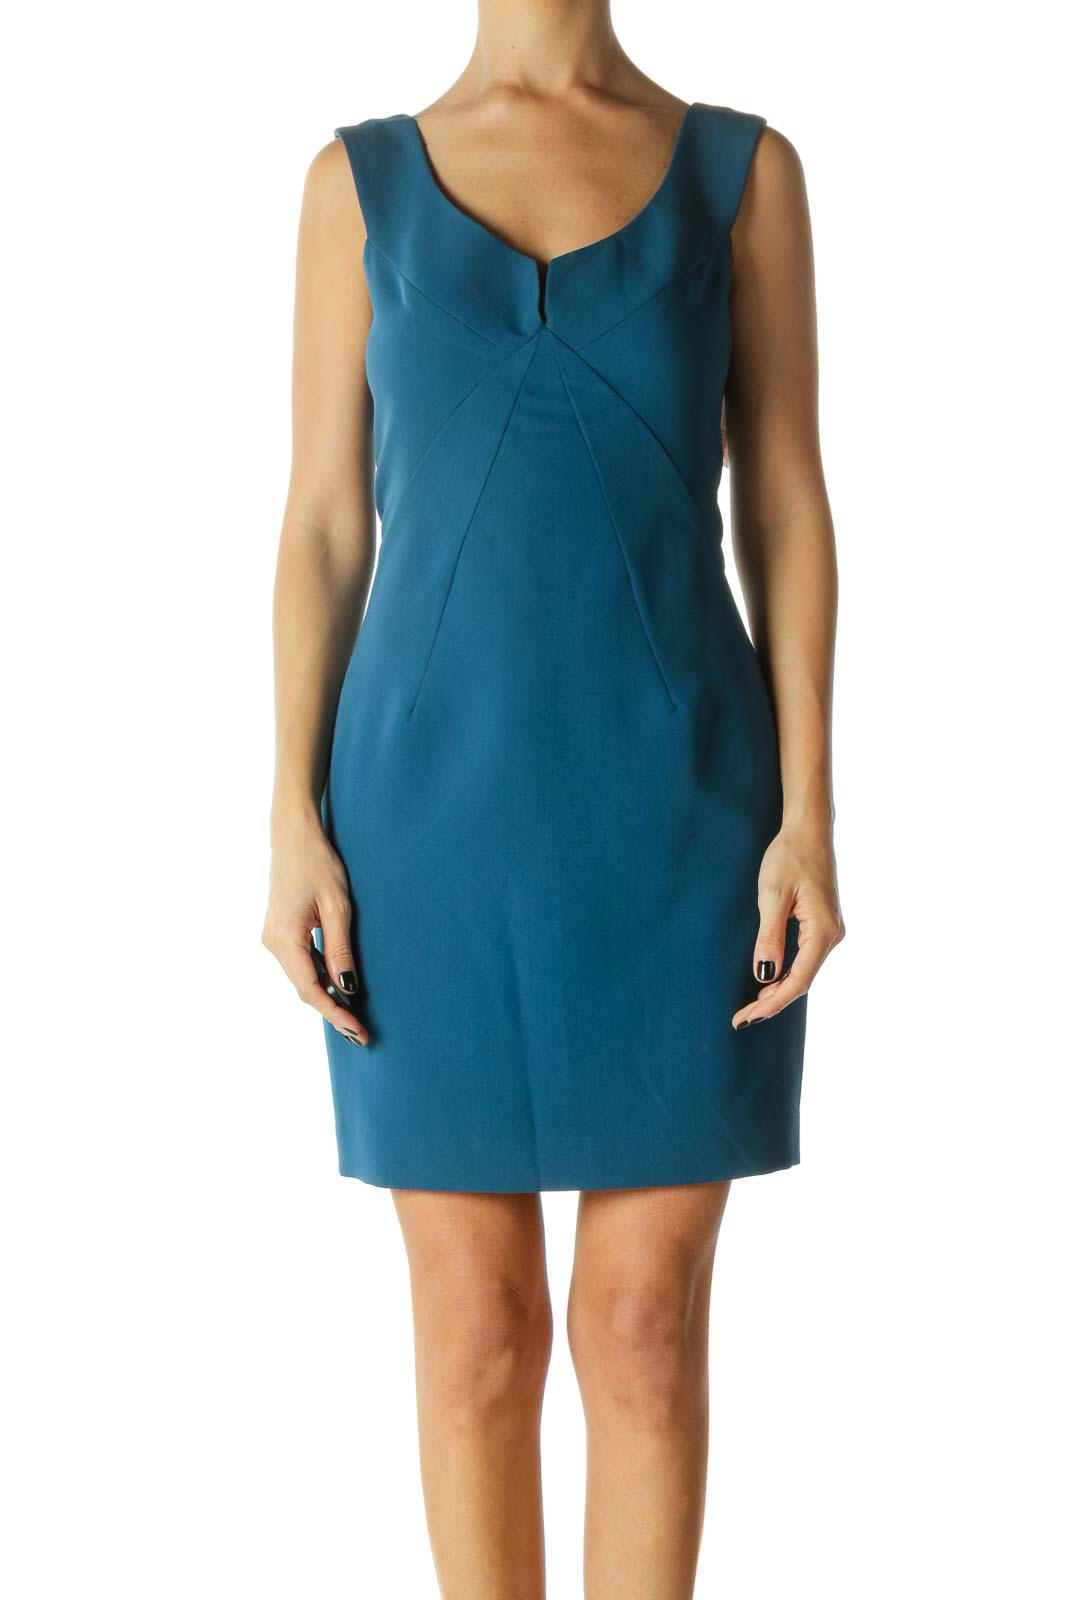 Blue Zippered Lined Sleeveless Cocktail Dress Front